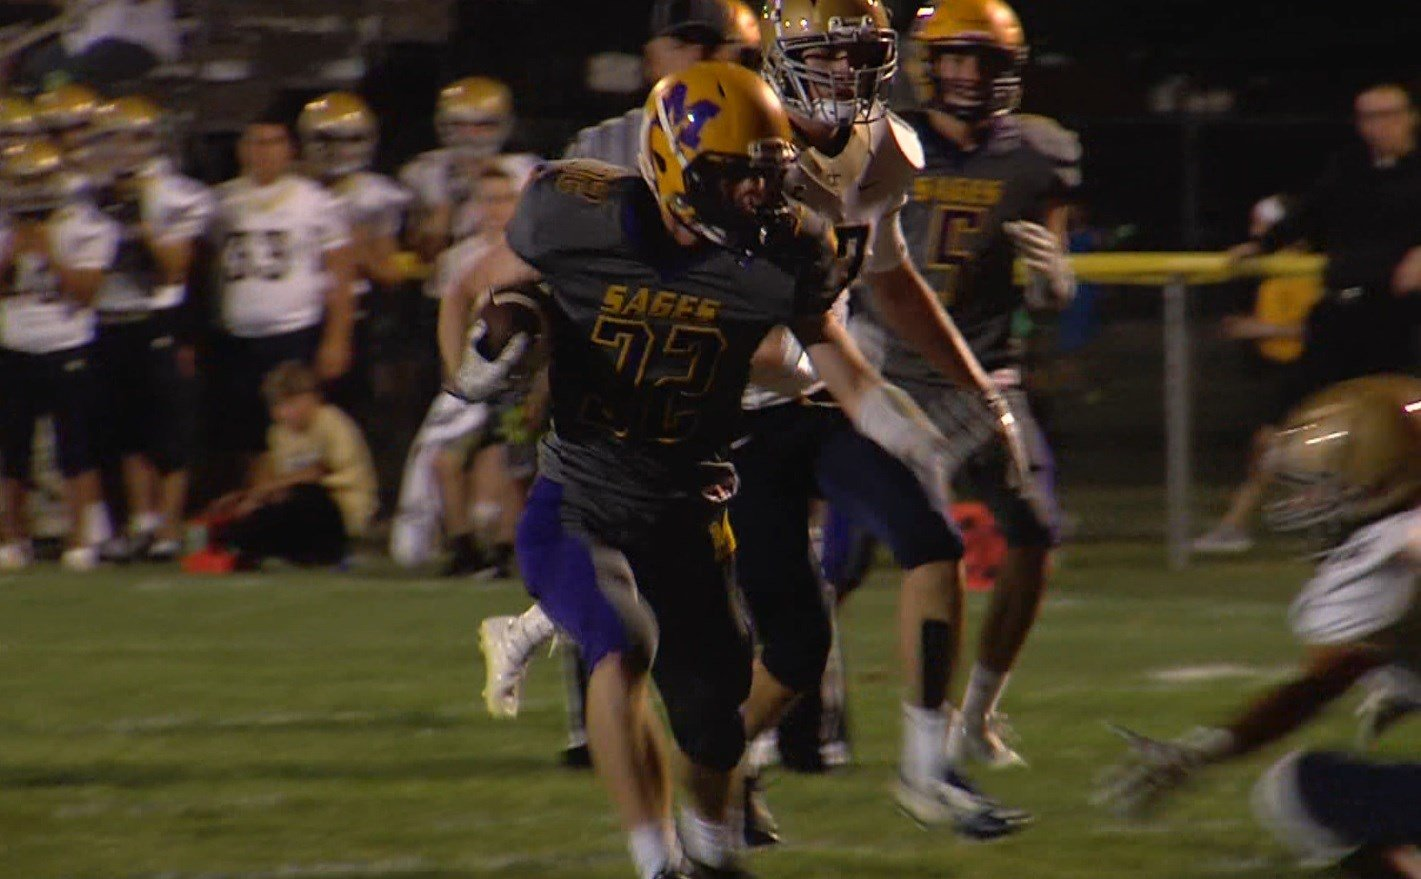 Monticello running back Lucas Lieb bursts through the Central Catholic defense on Friday night in the WAND Game of the Week.